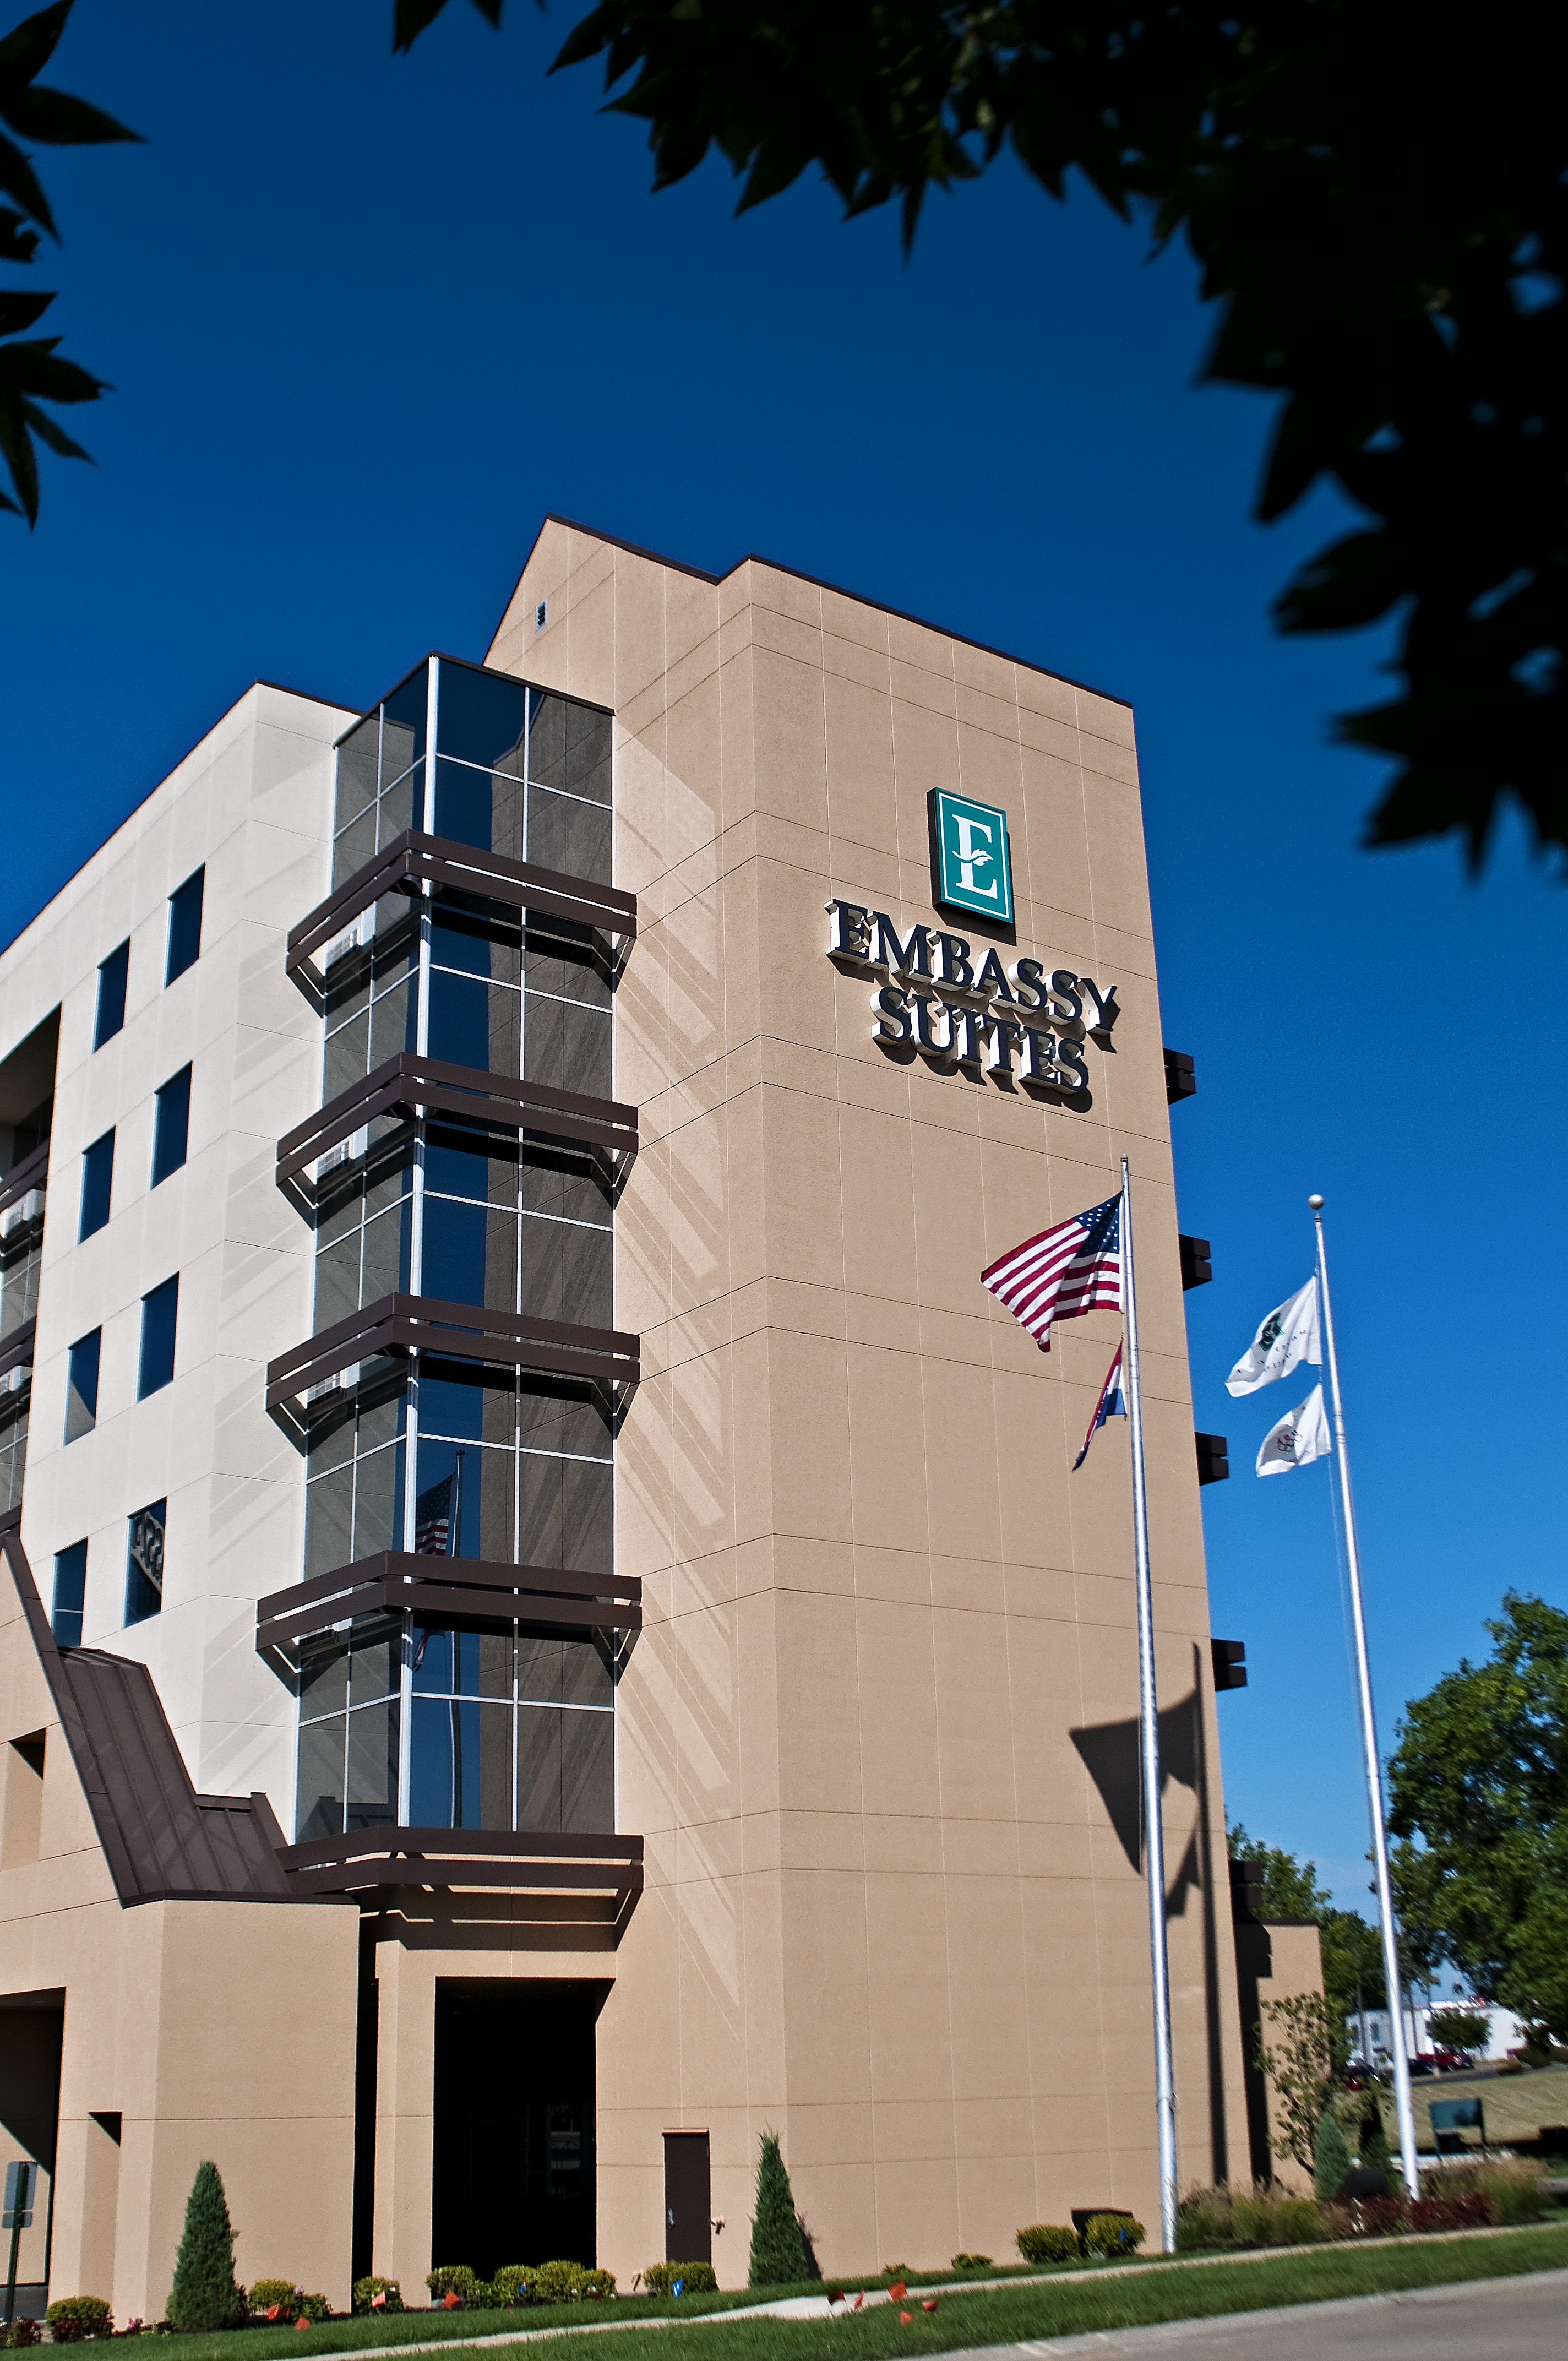 Embassy Suites by Hilton St. Louis - Airport